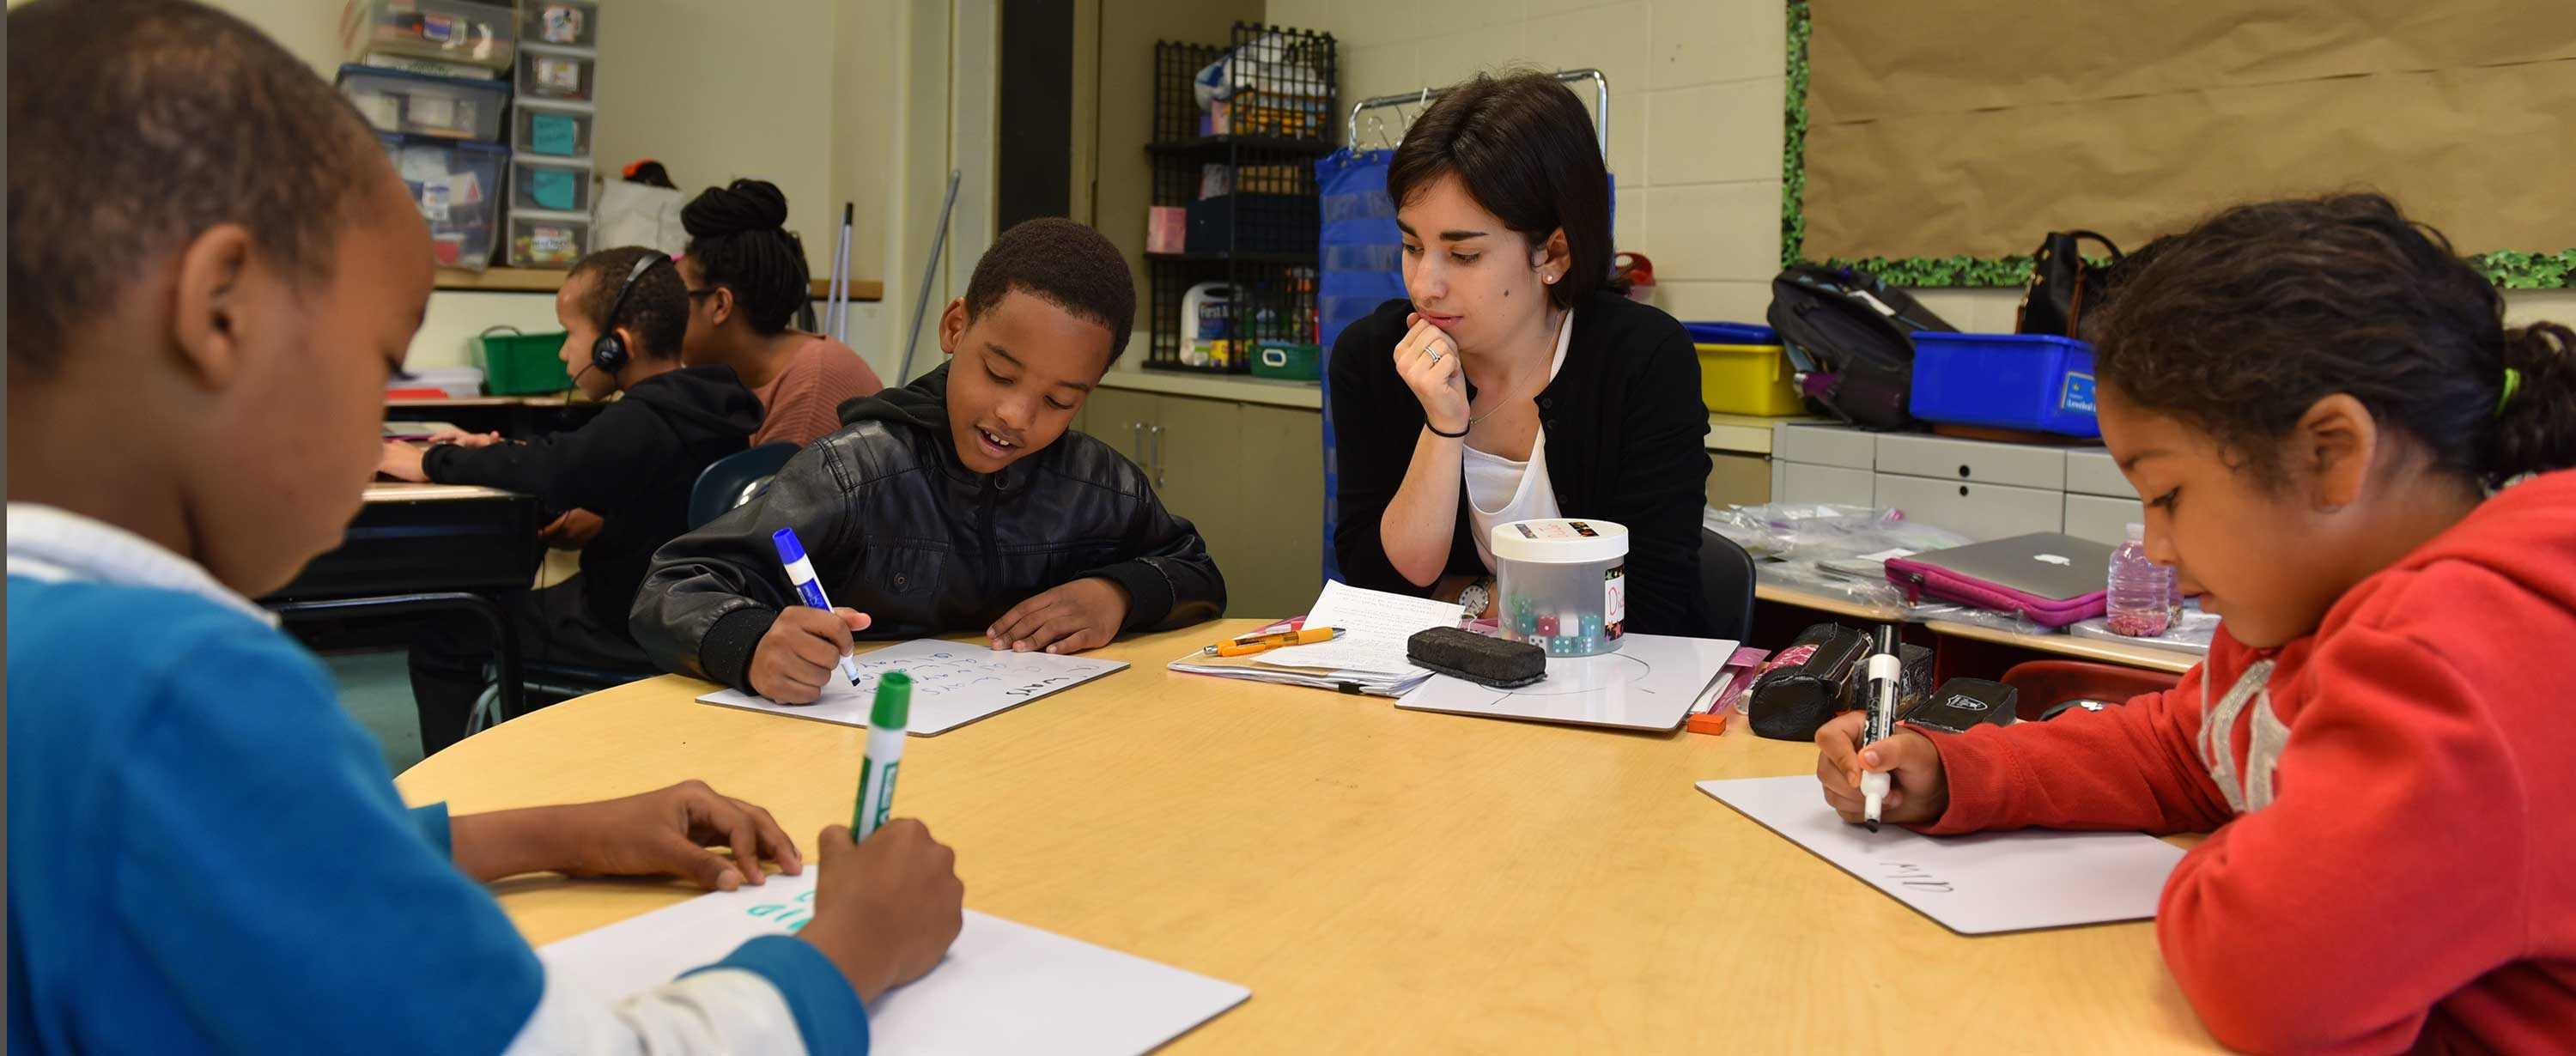 Image of students writing at Harvard-Kent School in Charlestown